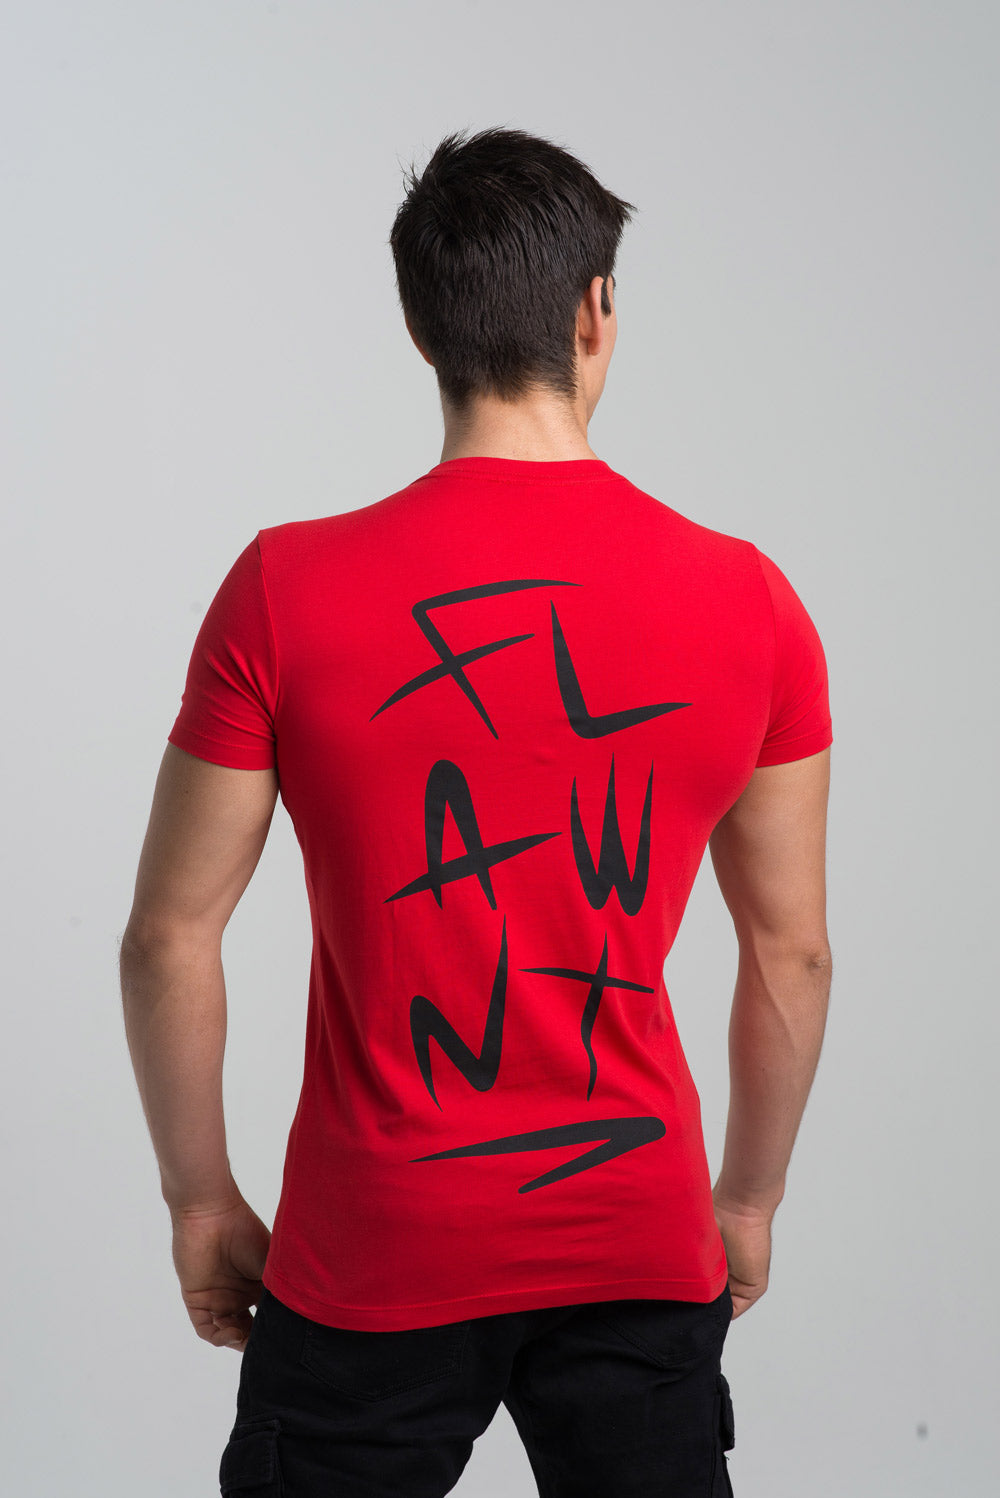 Red Flawnt Clothing Light Weight Tee/T Shirt